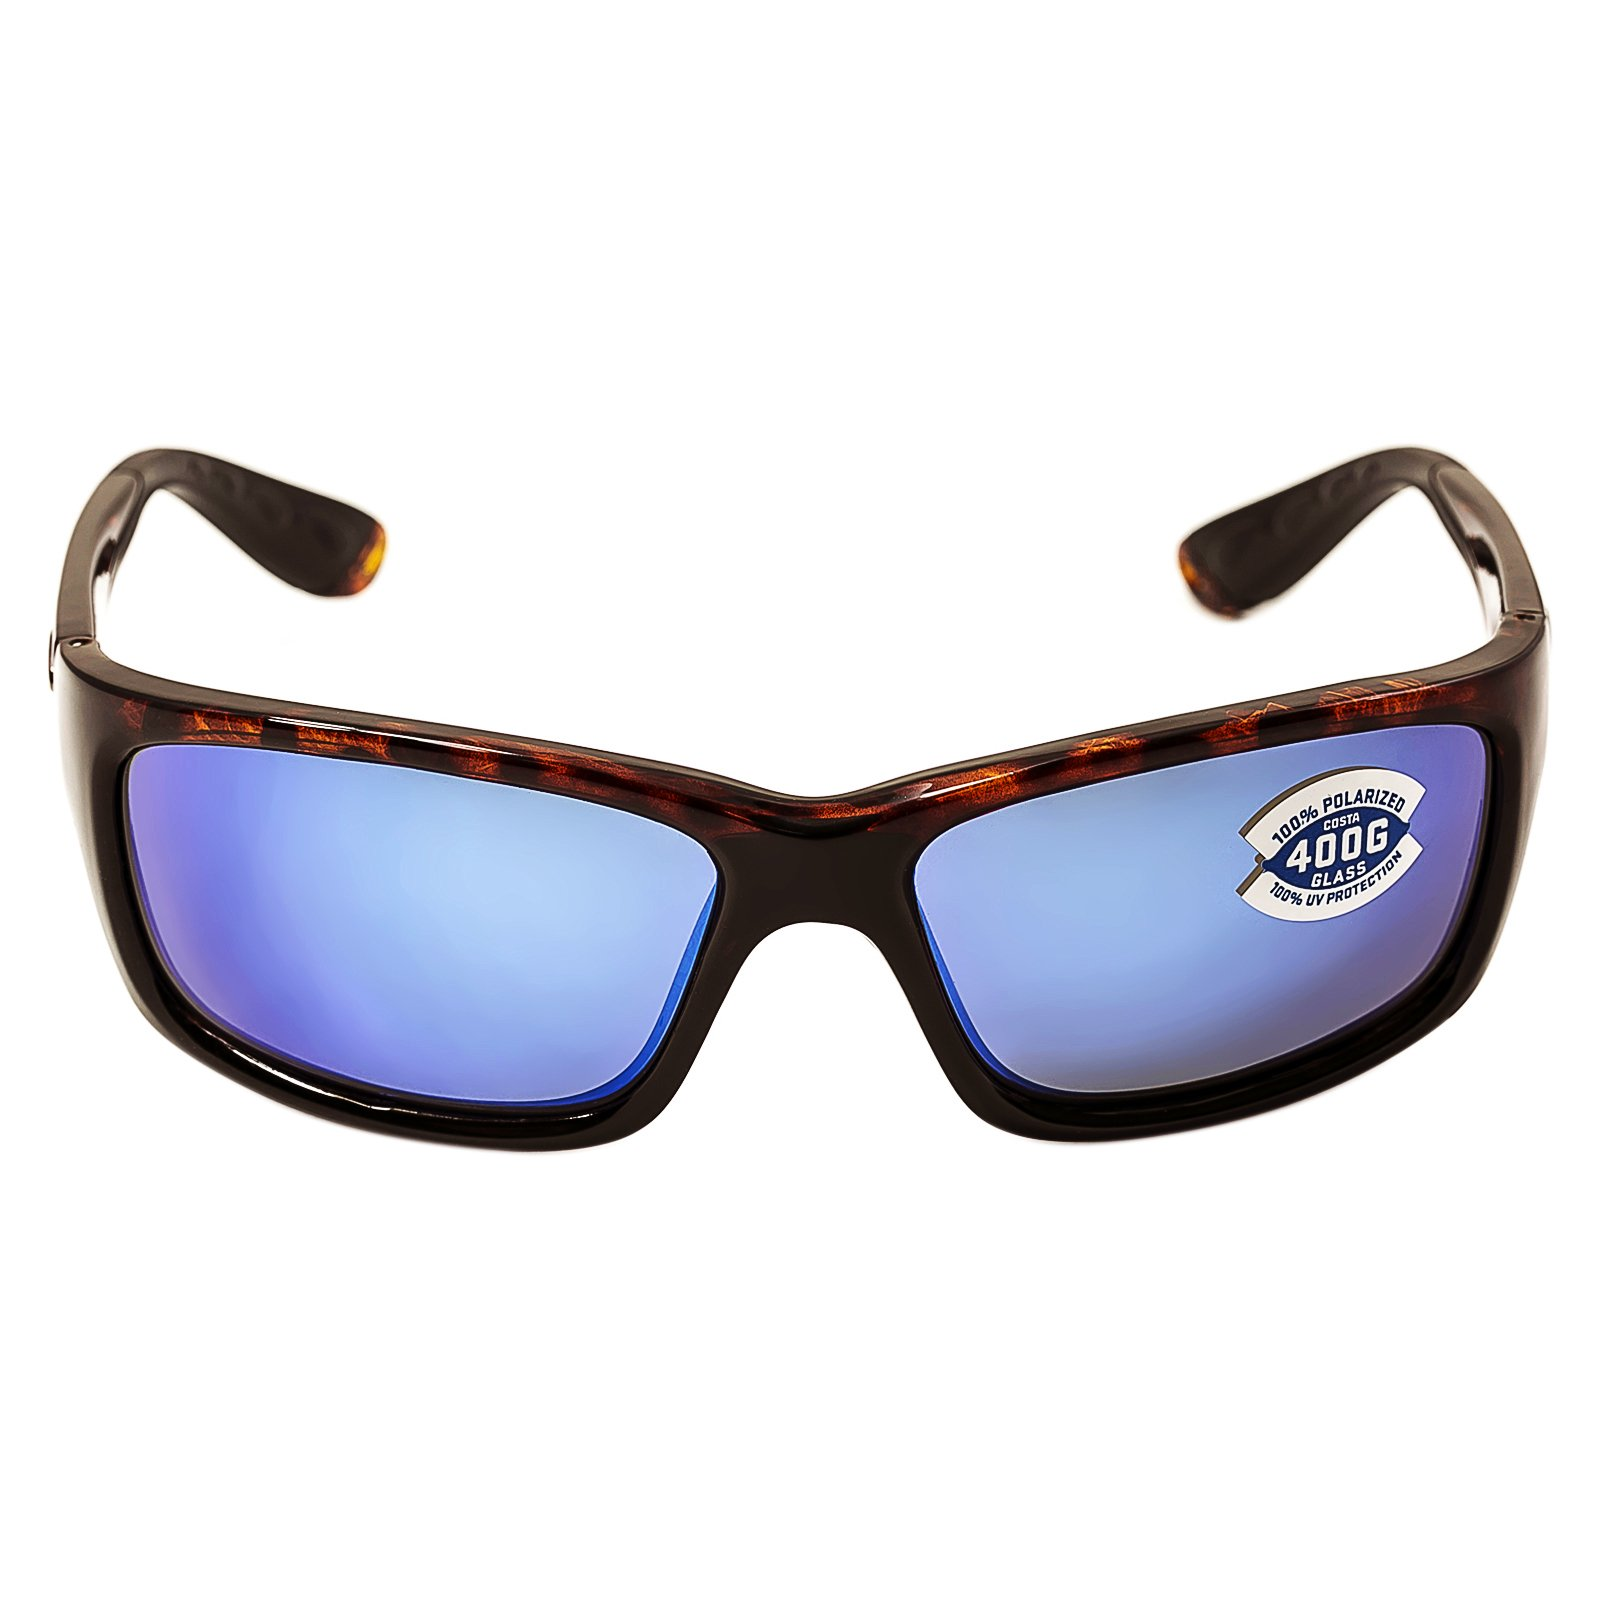 fc2ce1a28df9a Costa Del Mar Sunglasses - Jose- Glass   Frame  Tortoise Lens  Polarized Blue  Mirror Wave 400 Glass